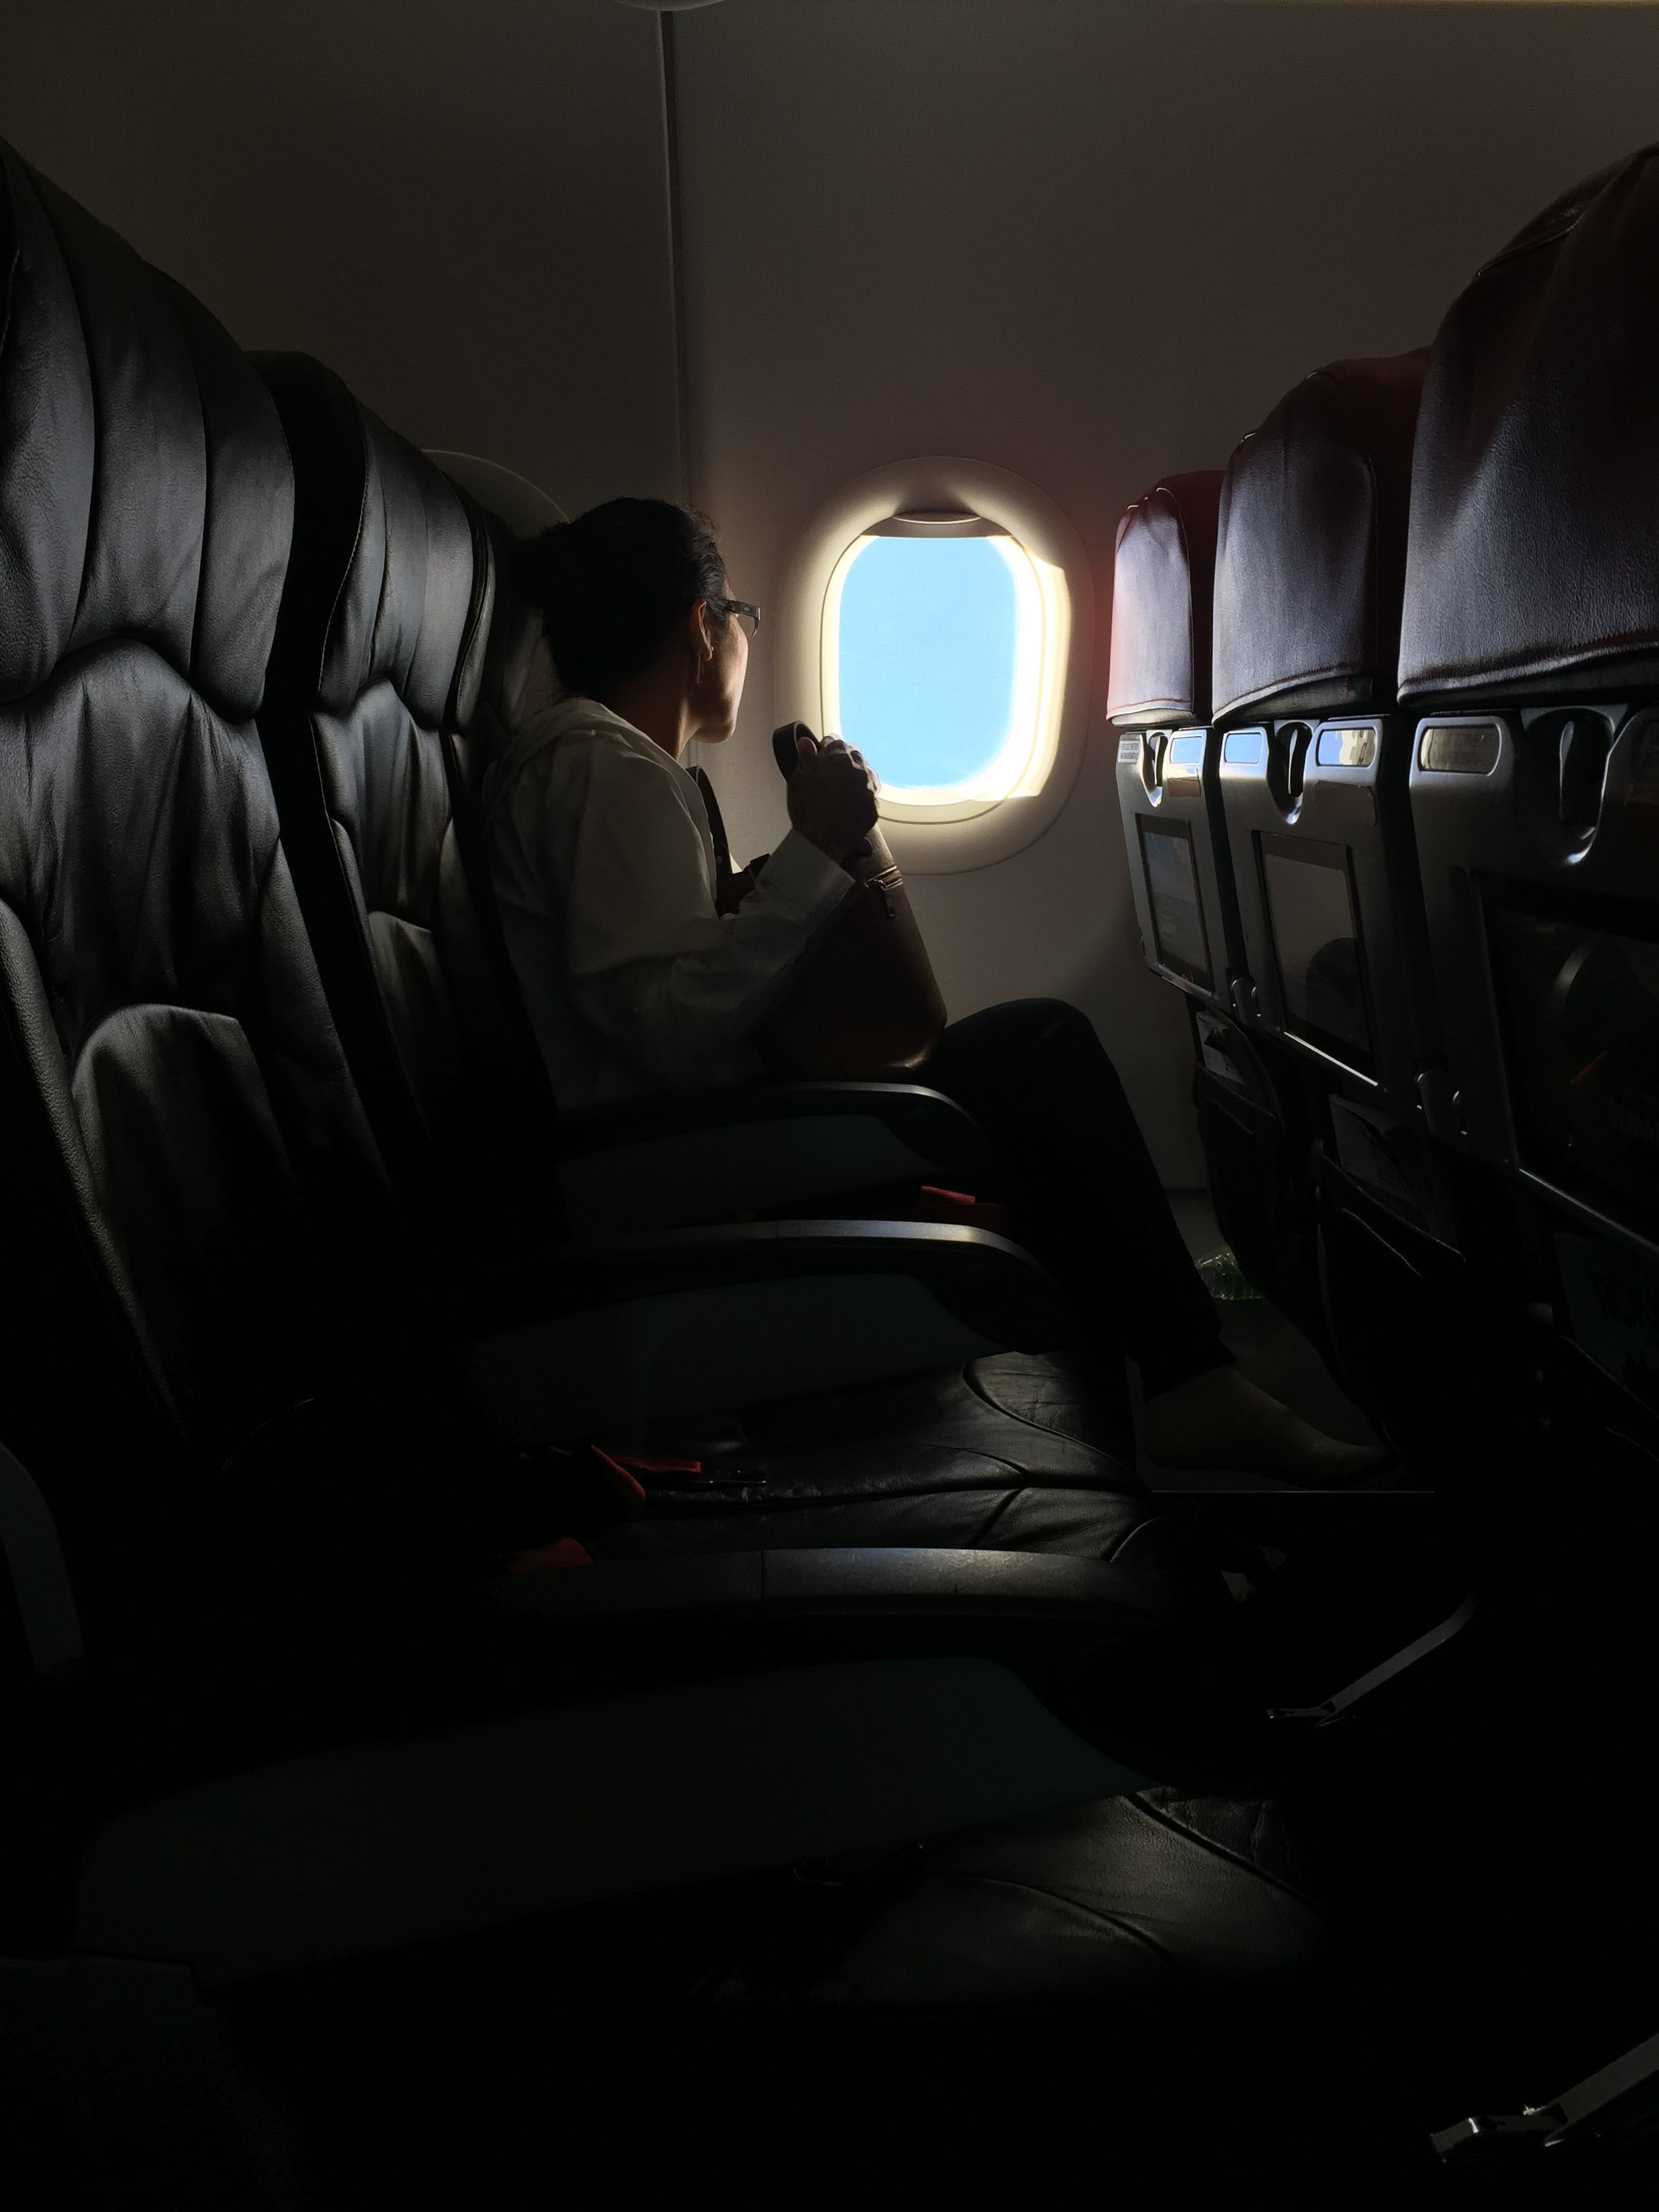 person sitting on plane watching the window